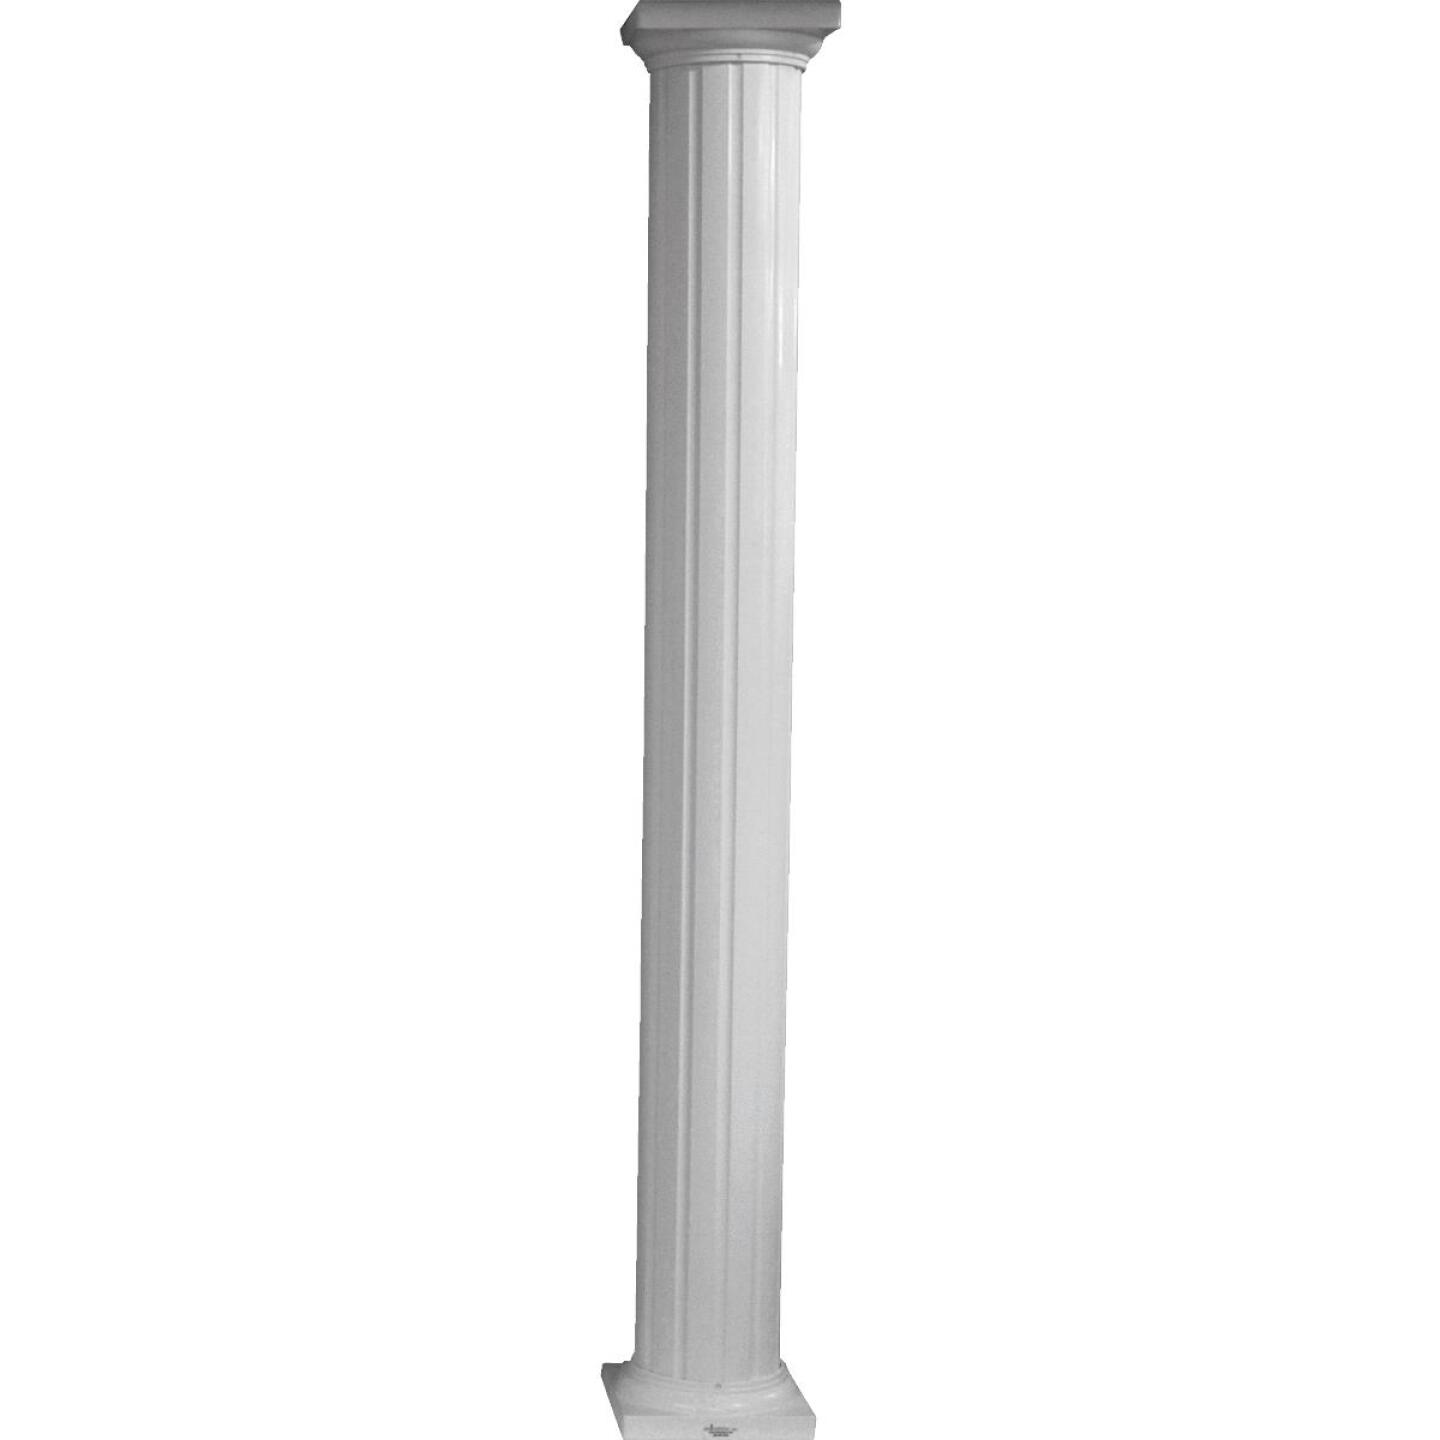 Crown Column 8 In. x 8 Ft. White Powder Coated Round Fluted Aluminum Column Image 1